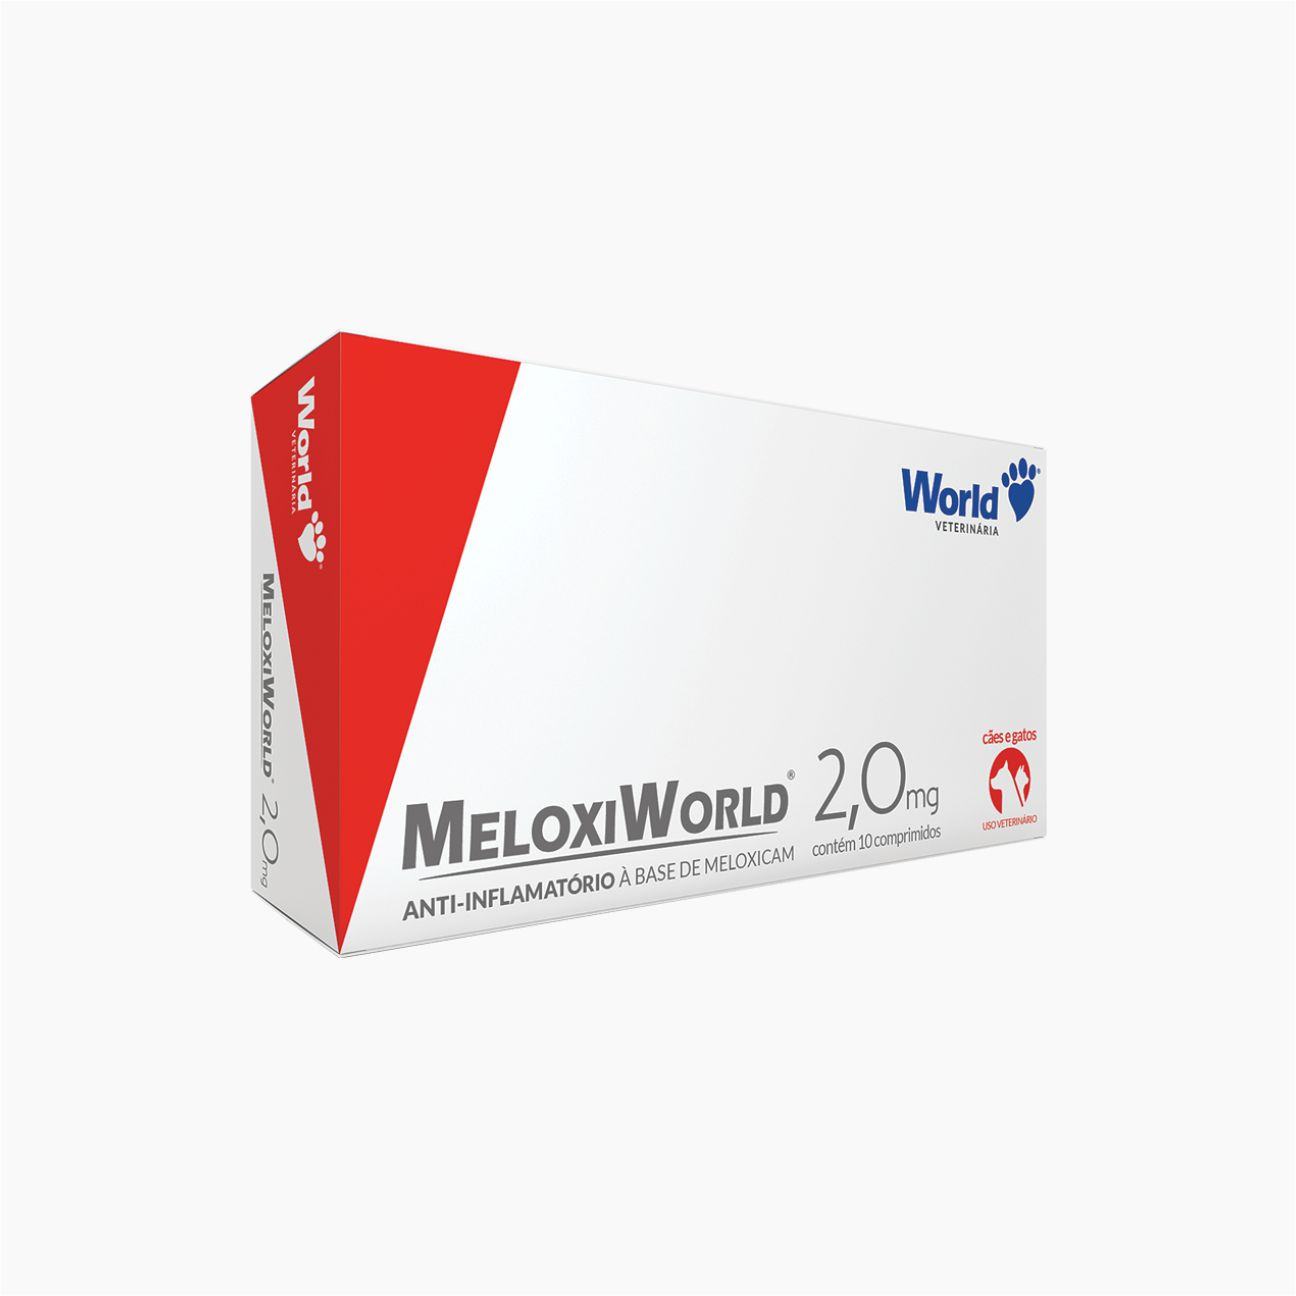 MeloxiWorld 2,0mg